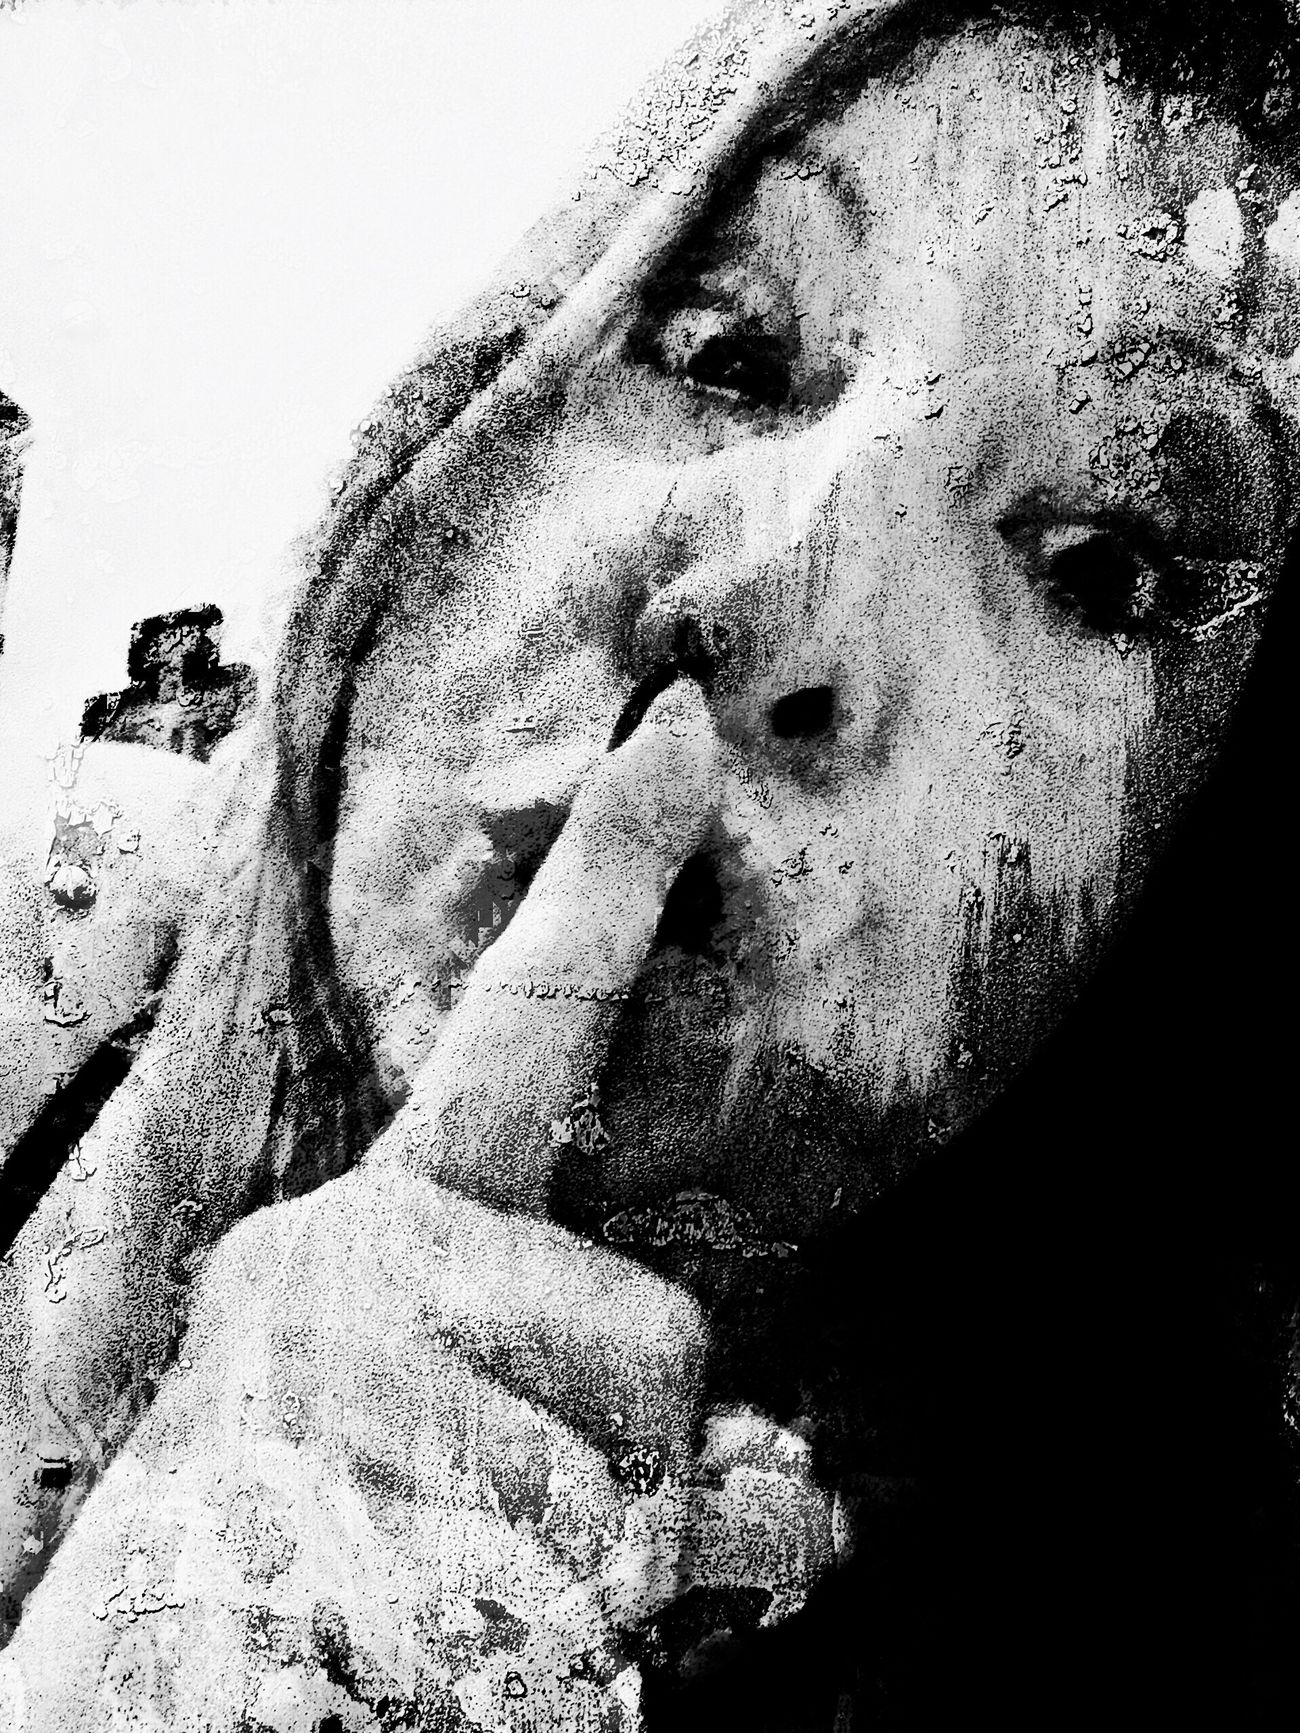 Awwww lies! Life is full of them and we believe in them daily. Human Face Close-up For My Friends That Connect Black & White Black And White Blackandwhite IPhoneArtism Abstract Me Speak No Evil Dear